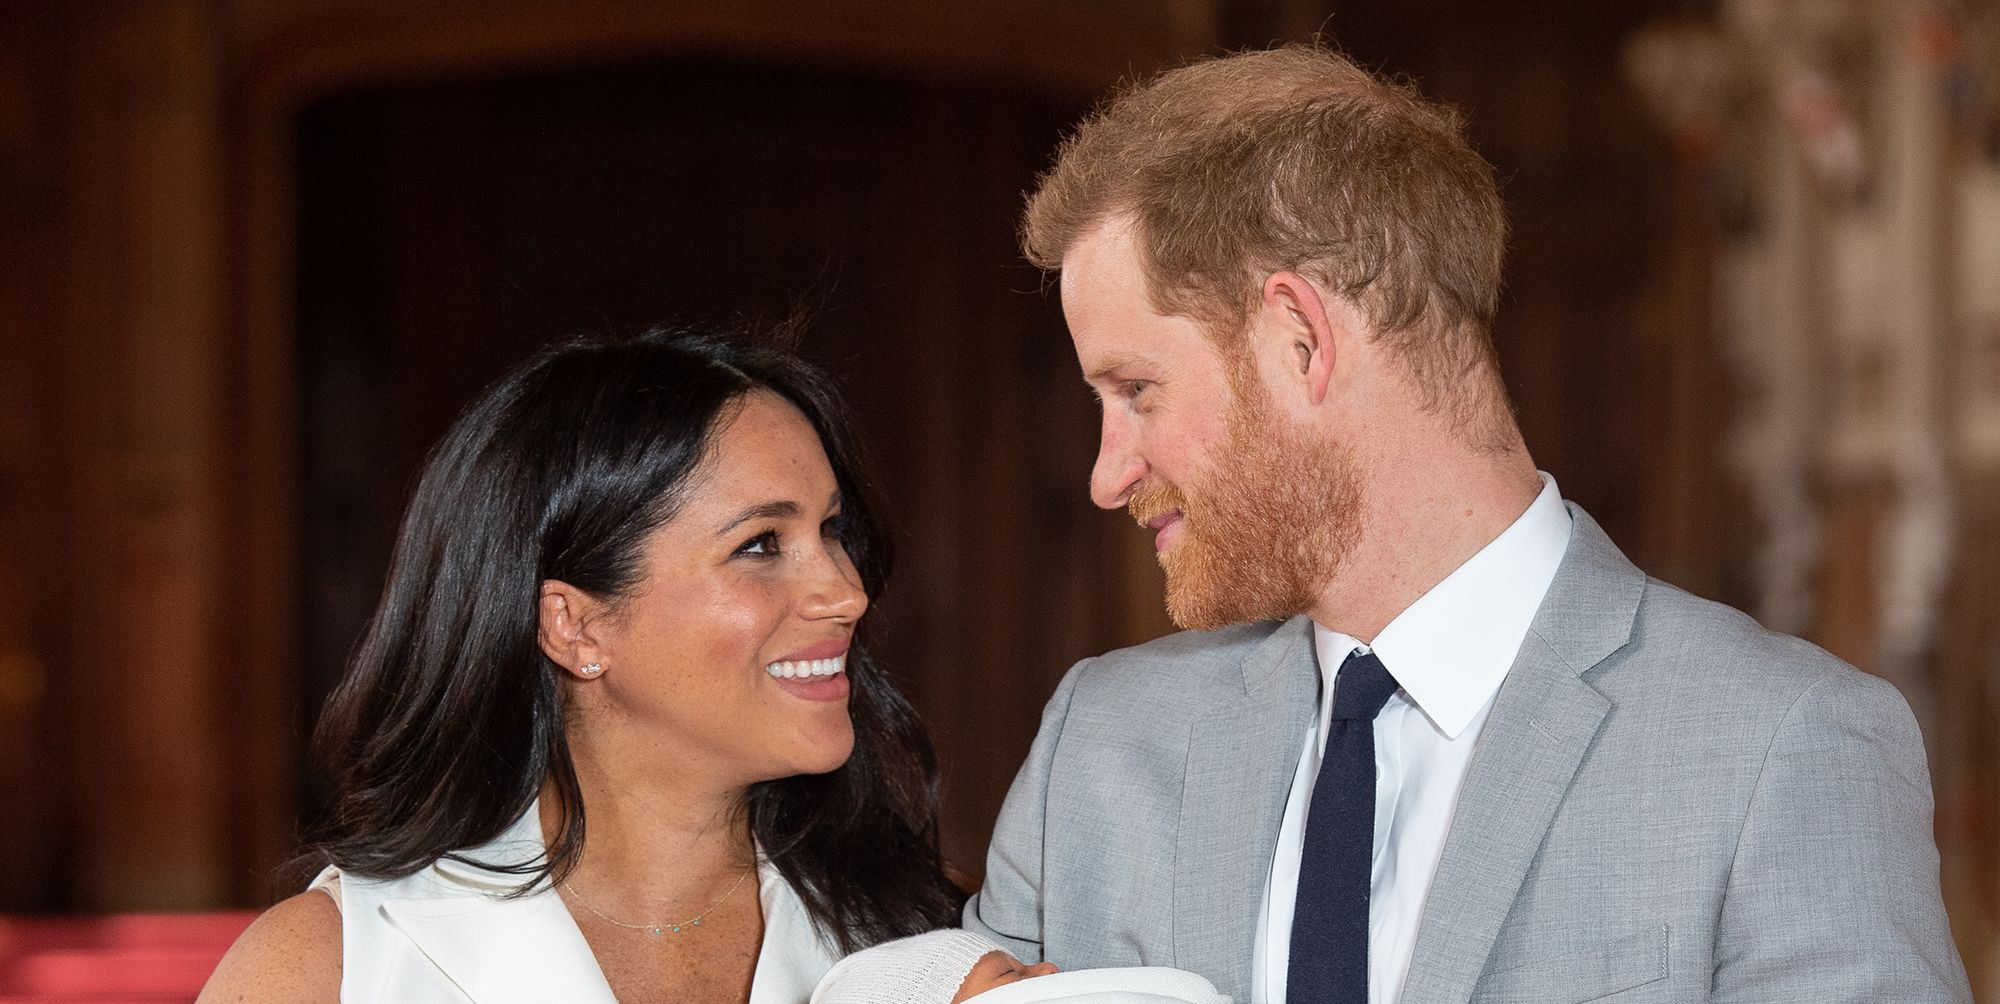 Royal baby Archie, Prince Harry, Meghan Markle